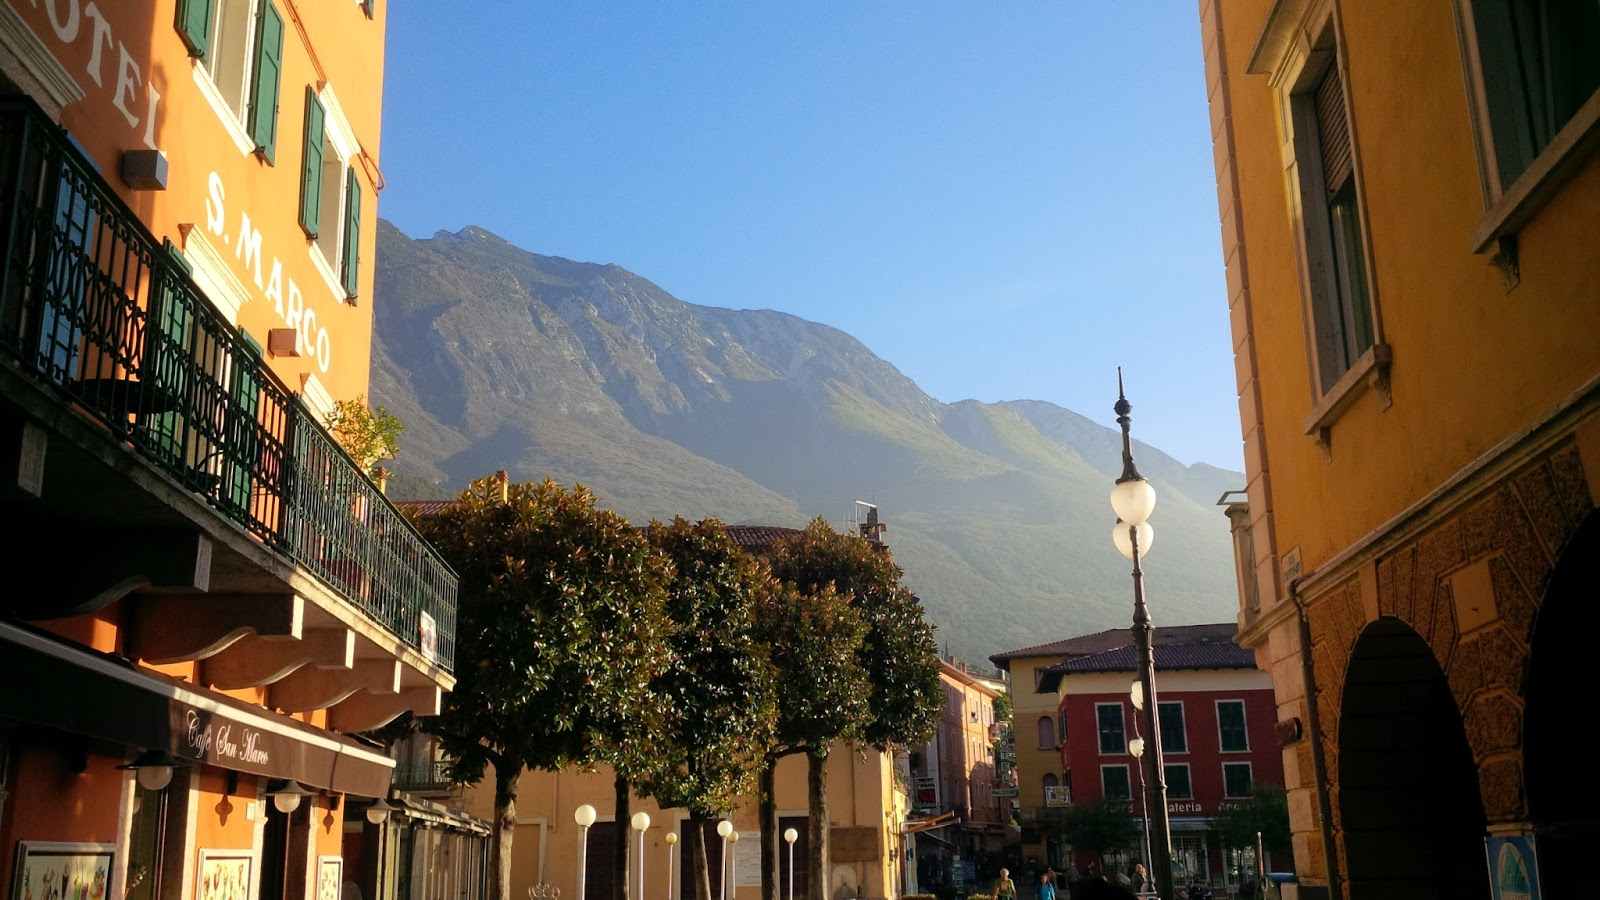 Malcesine with Mount Baldo as its backdrop - Veneto, Italy - www.rossiwrites.com